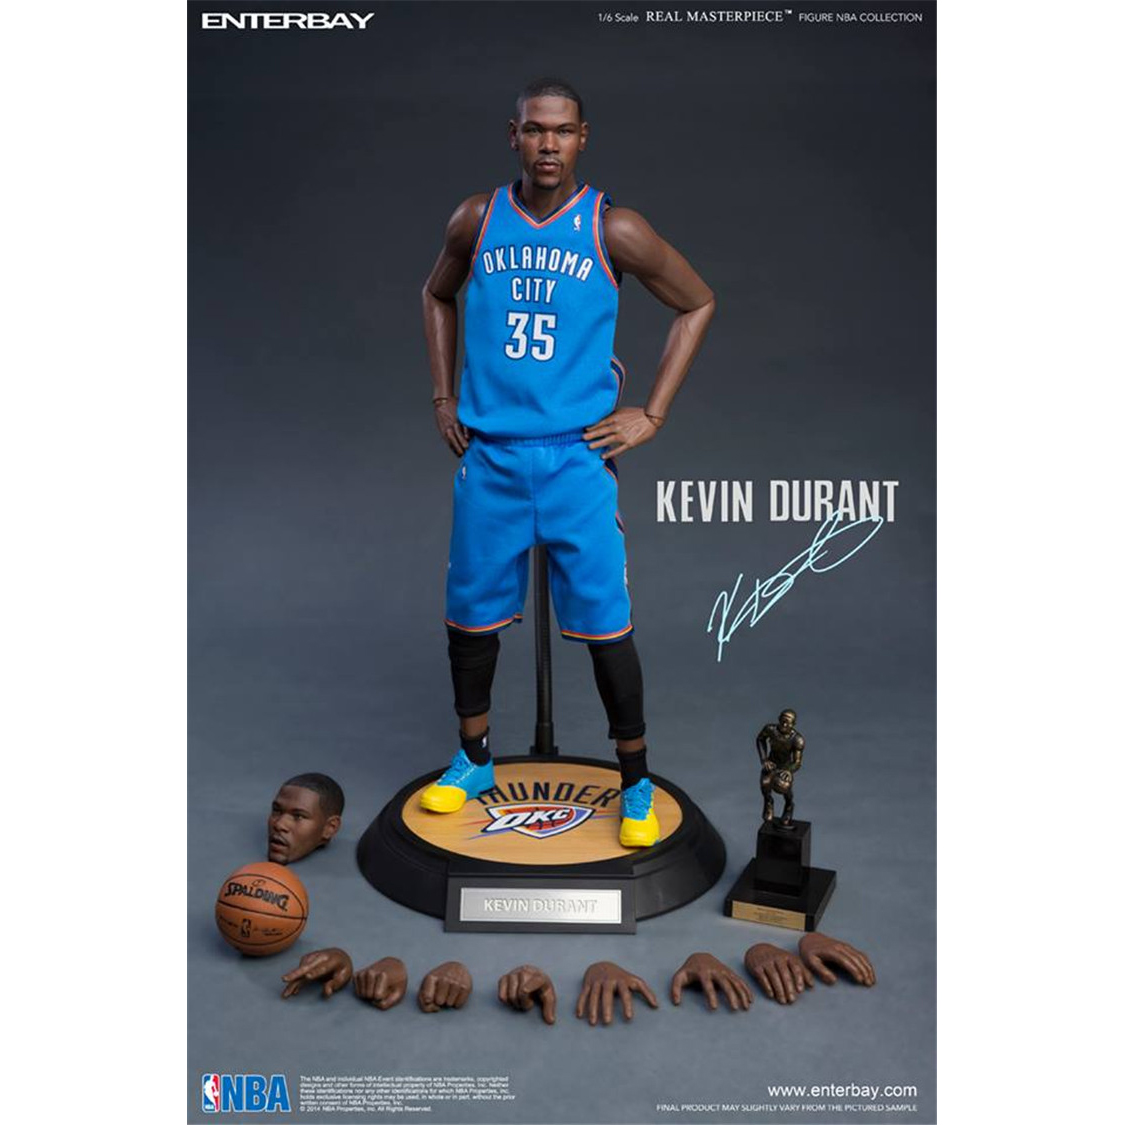 XINDUPLAN Kevin Durant NBA Golden State Warriors 35 MVP  Action Figure Toys 1/6 34cm basketball PVC Gift Collection Model 1079 nba basketball characters kobe james curry kyrie john damian 10cm action figure toys